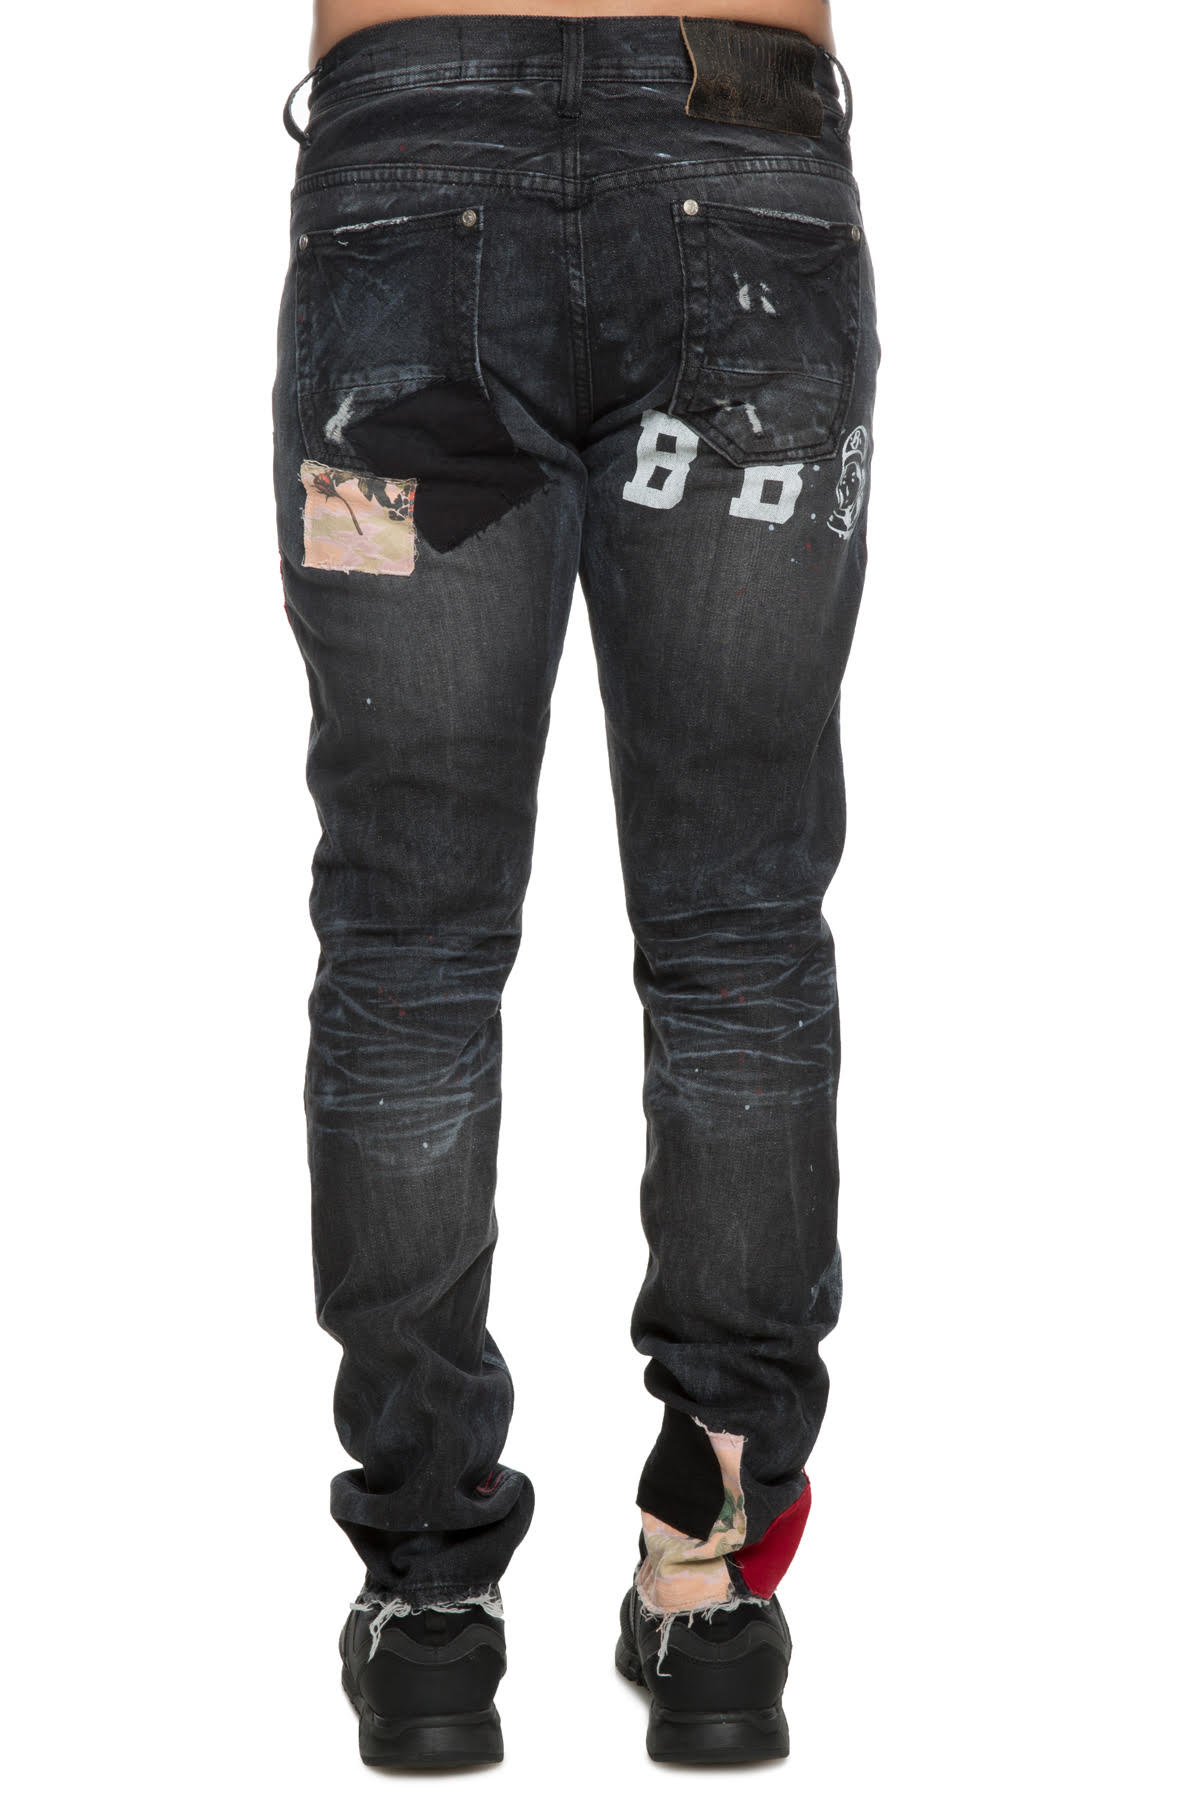 Image of The Roadie Jeans in Harlow